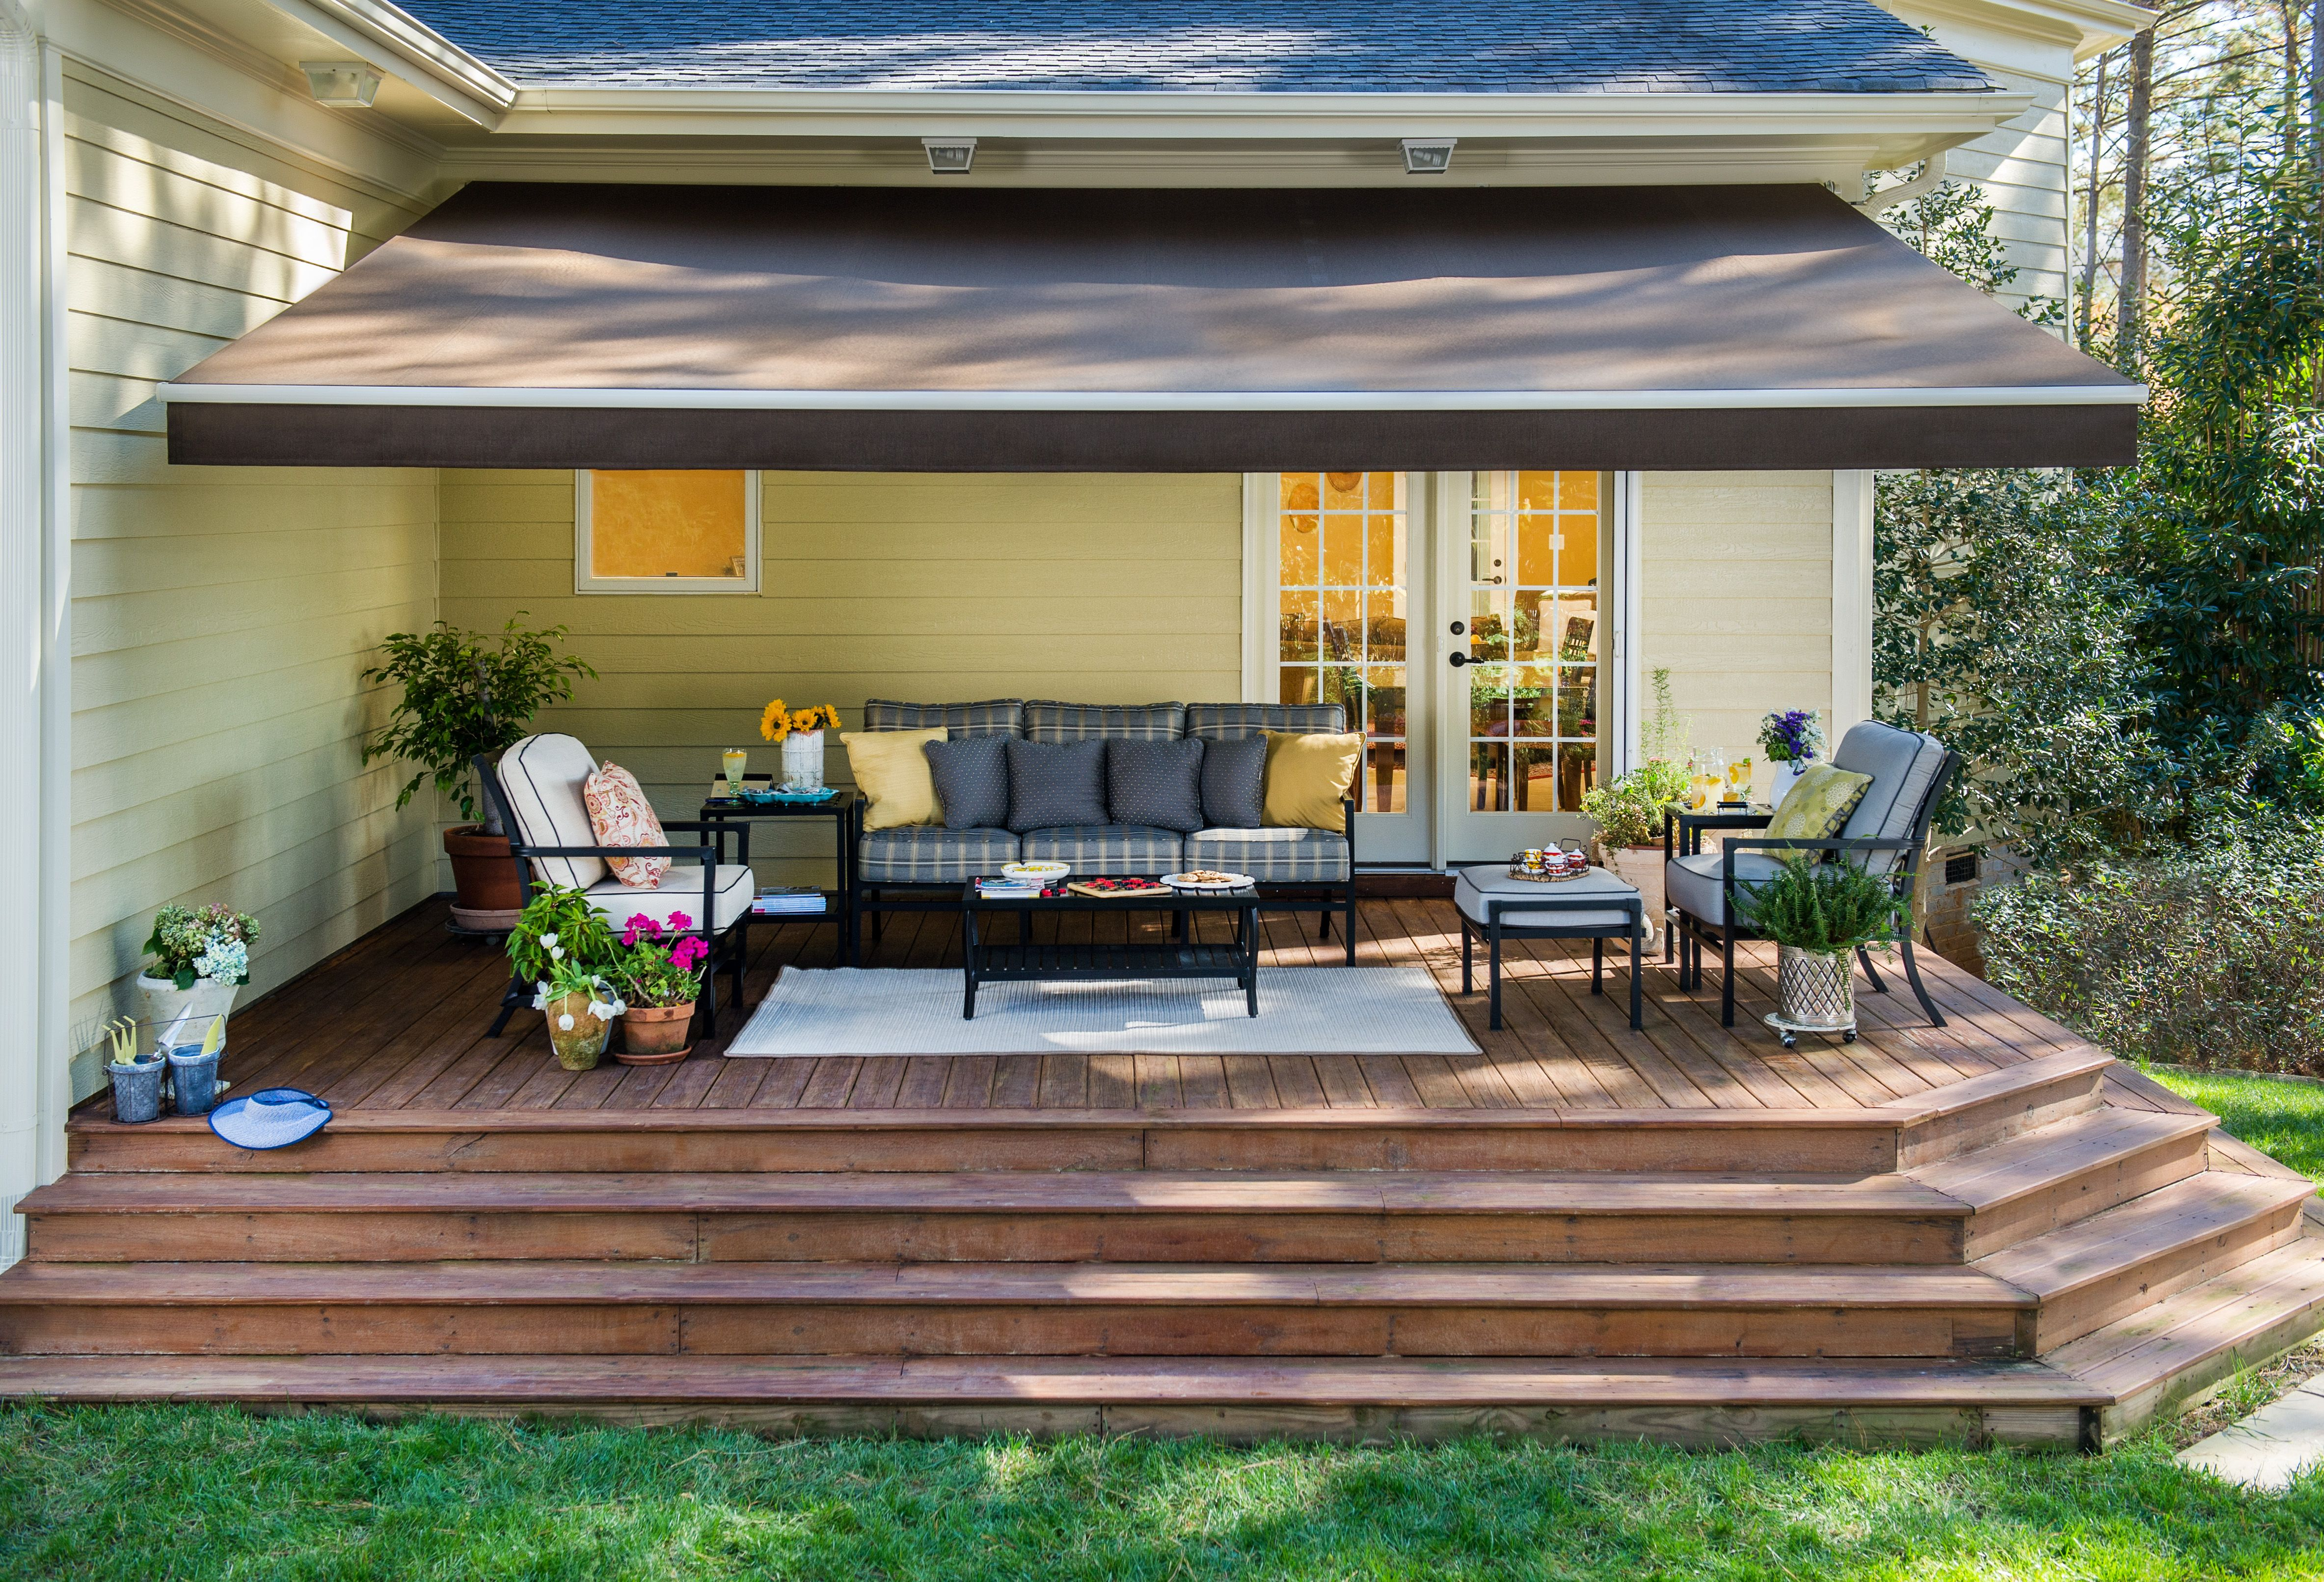 Exterior sun setter retractable awning with how much is a retractable awning also sunsetter manual retractable awning and how much does a retractable awning